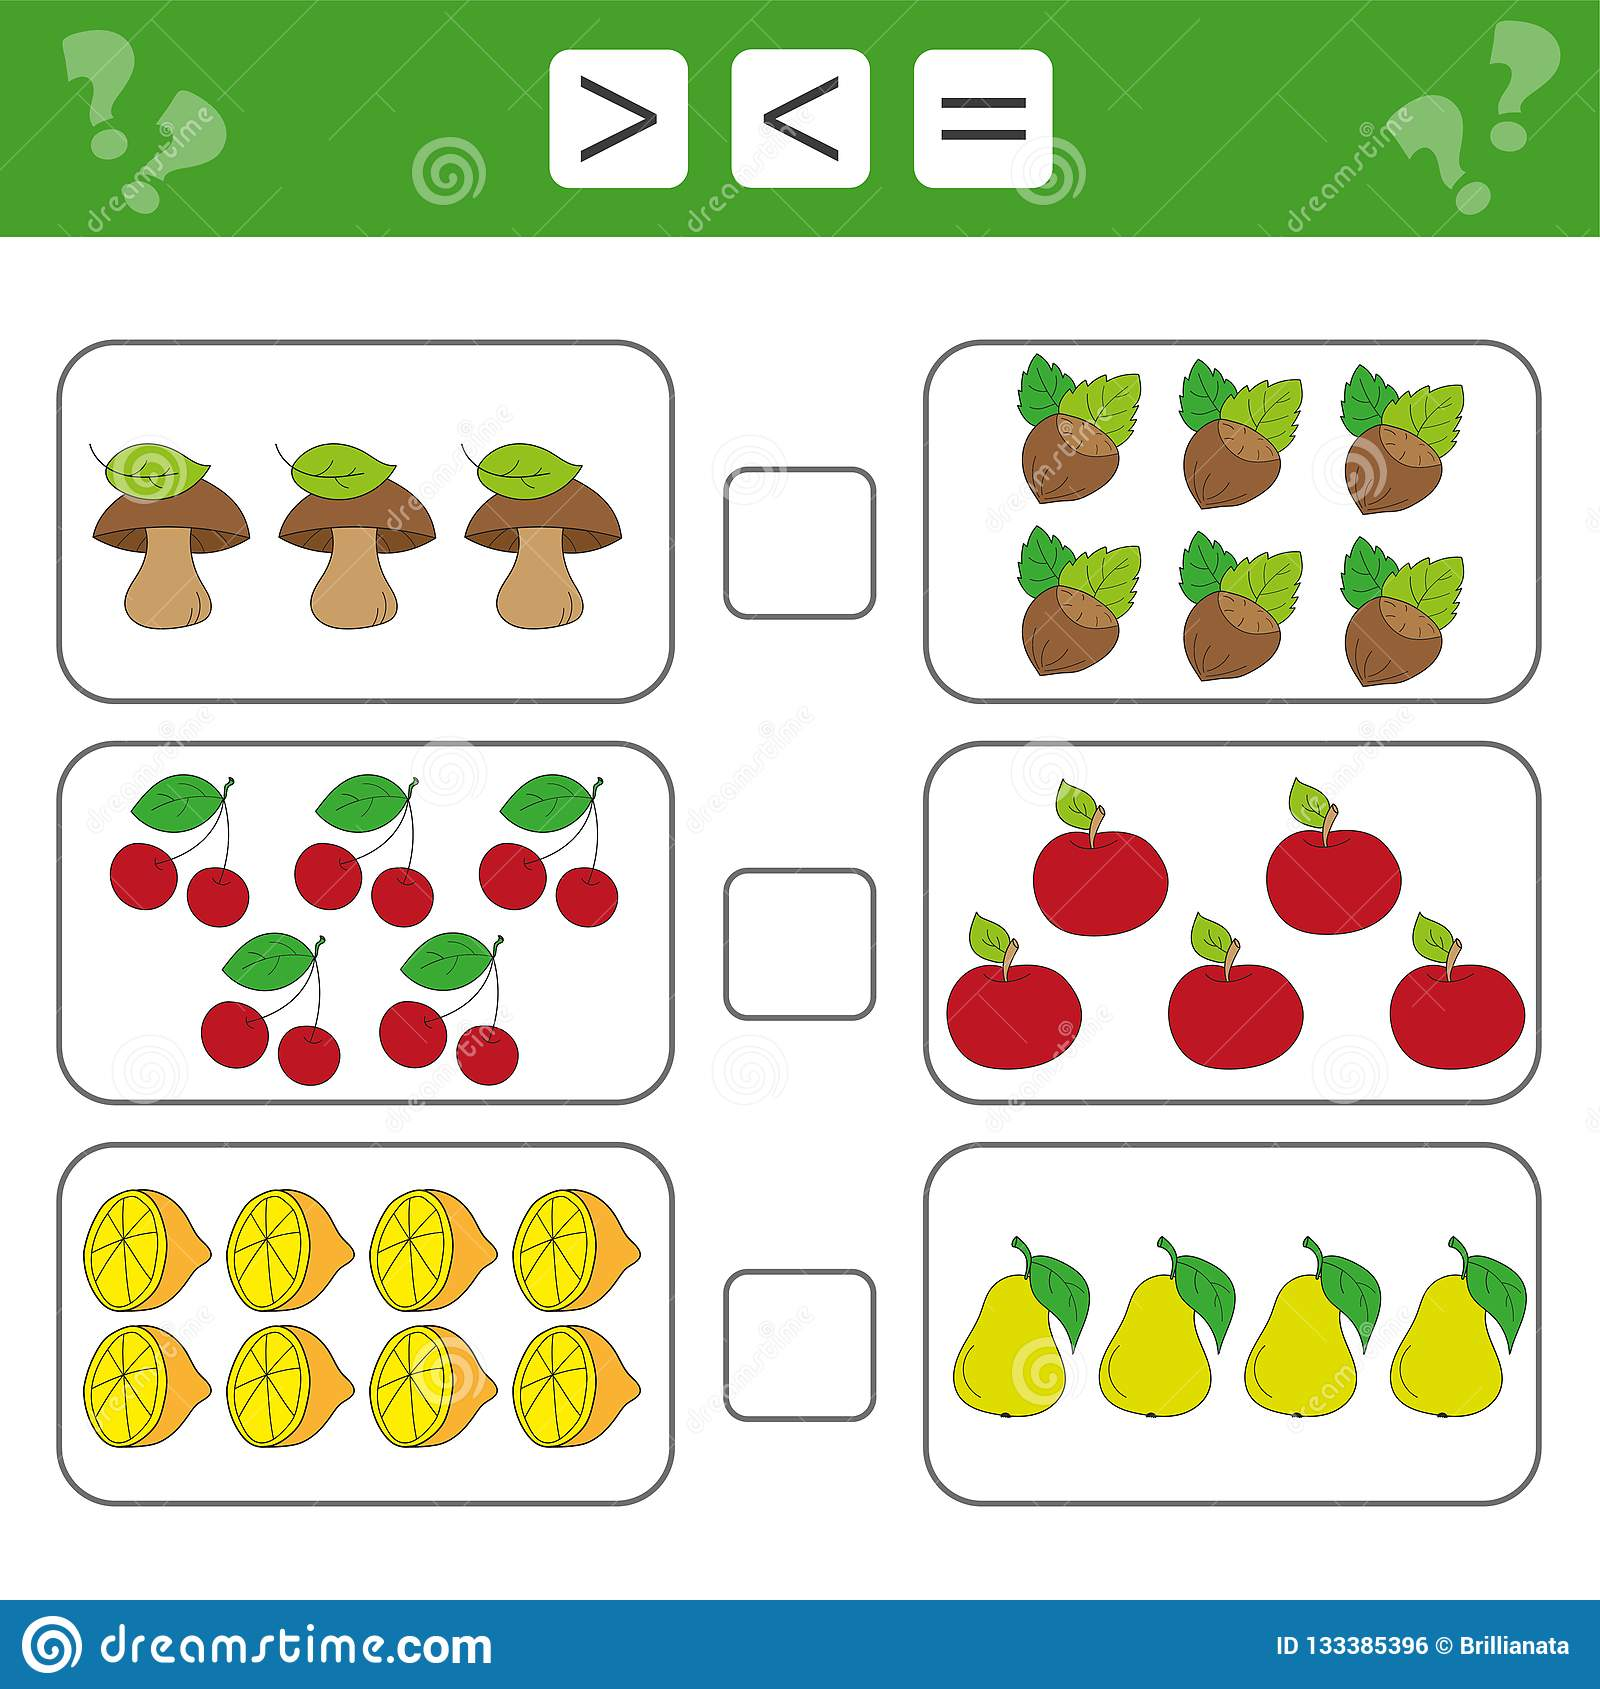 Mathematics Worksheet For Kids Count Educational Children